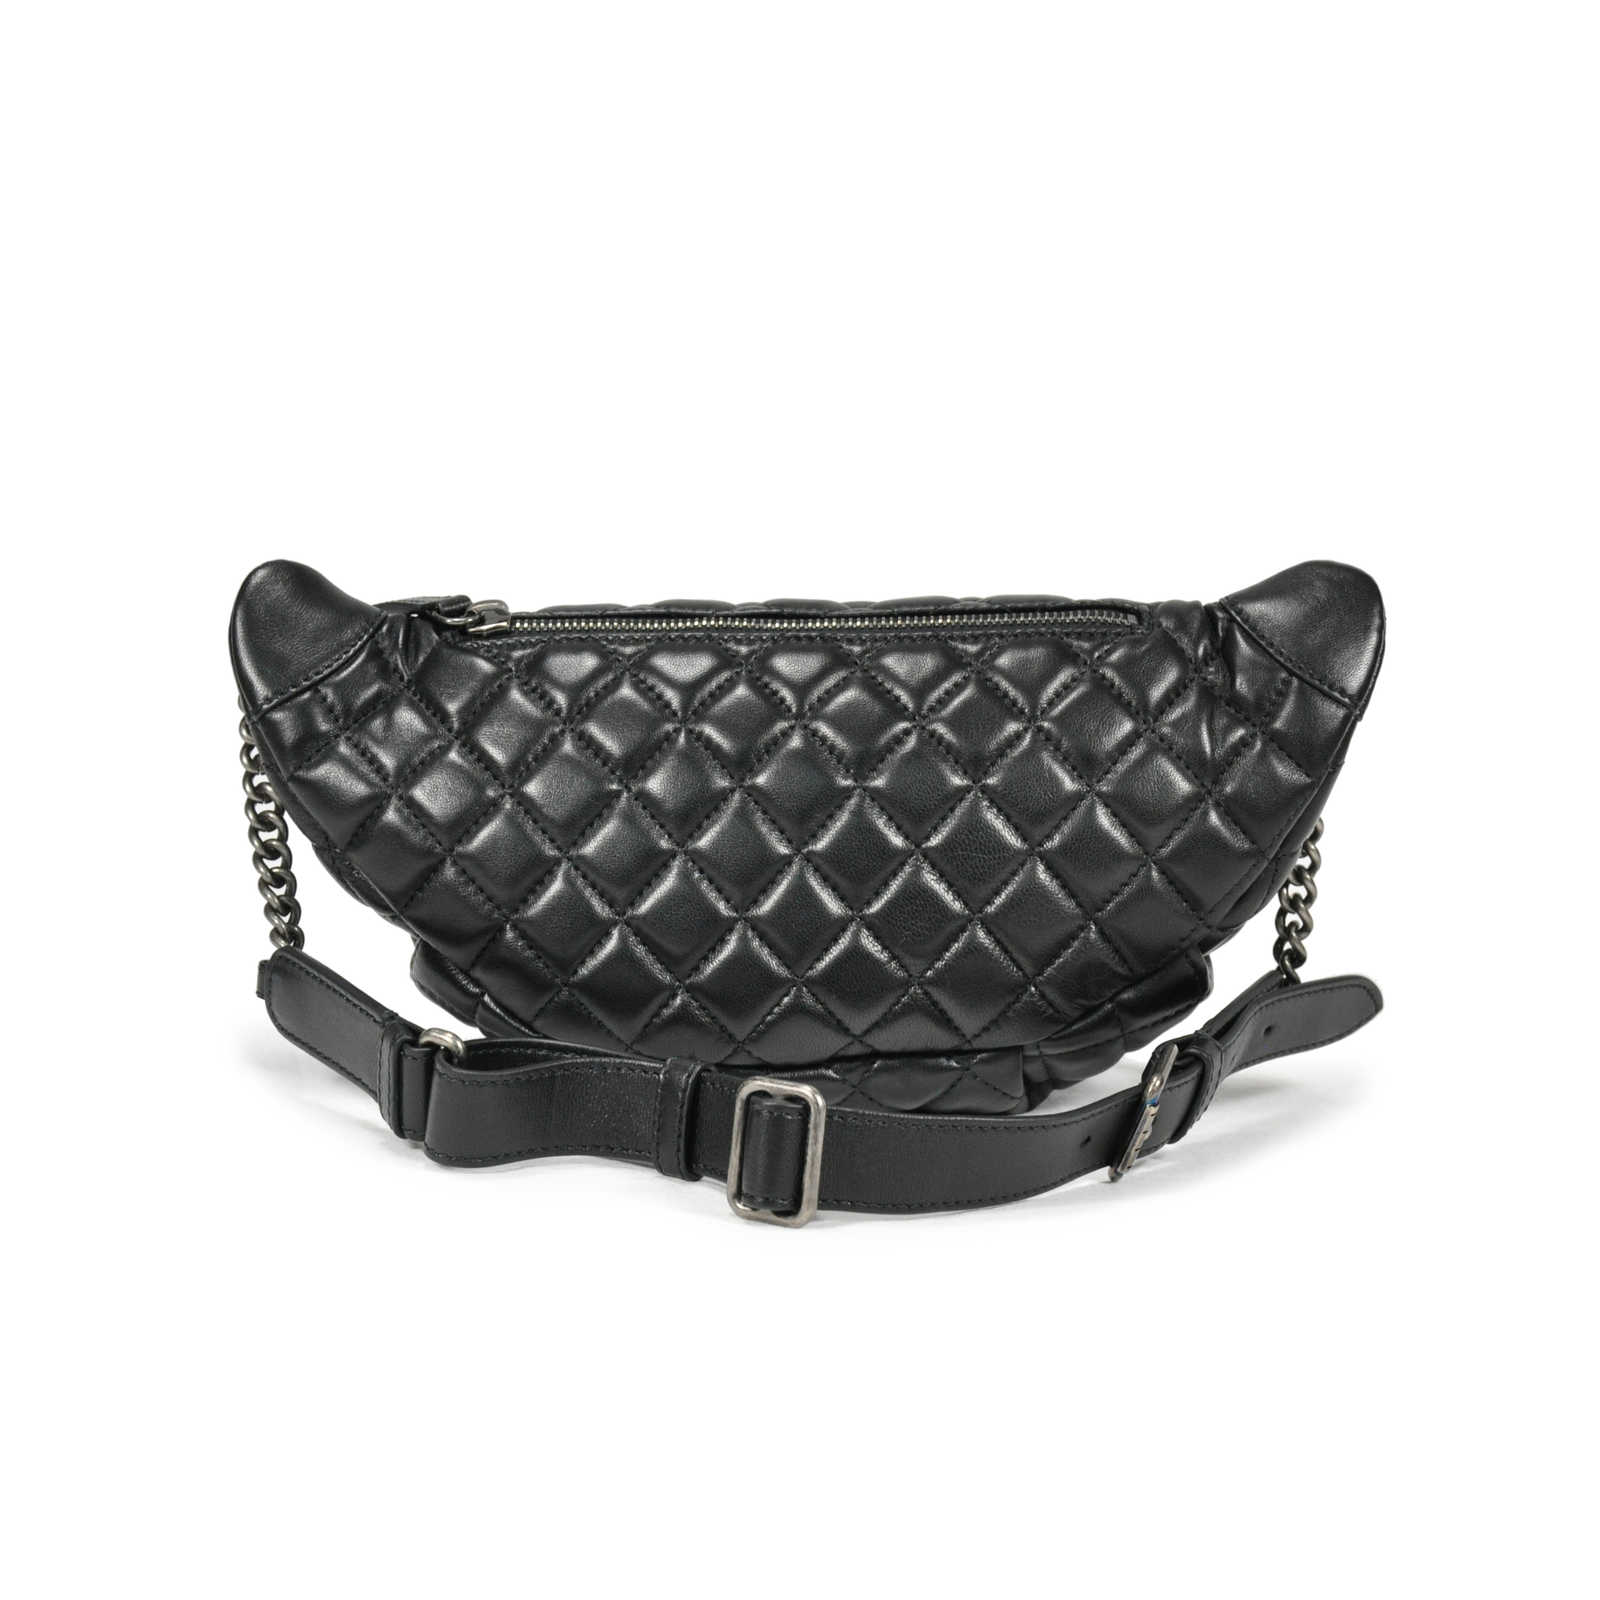 4a4687a85 ... Authentic Second Hand Chanel Quilted Fanny Pack Waist Bag  (PSS-145-00087) ...